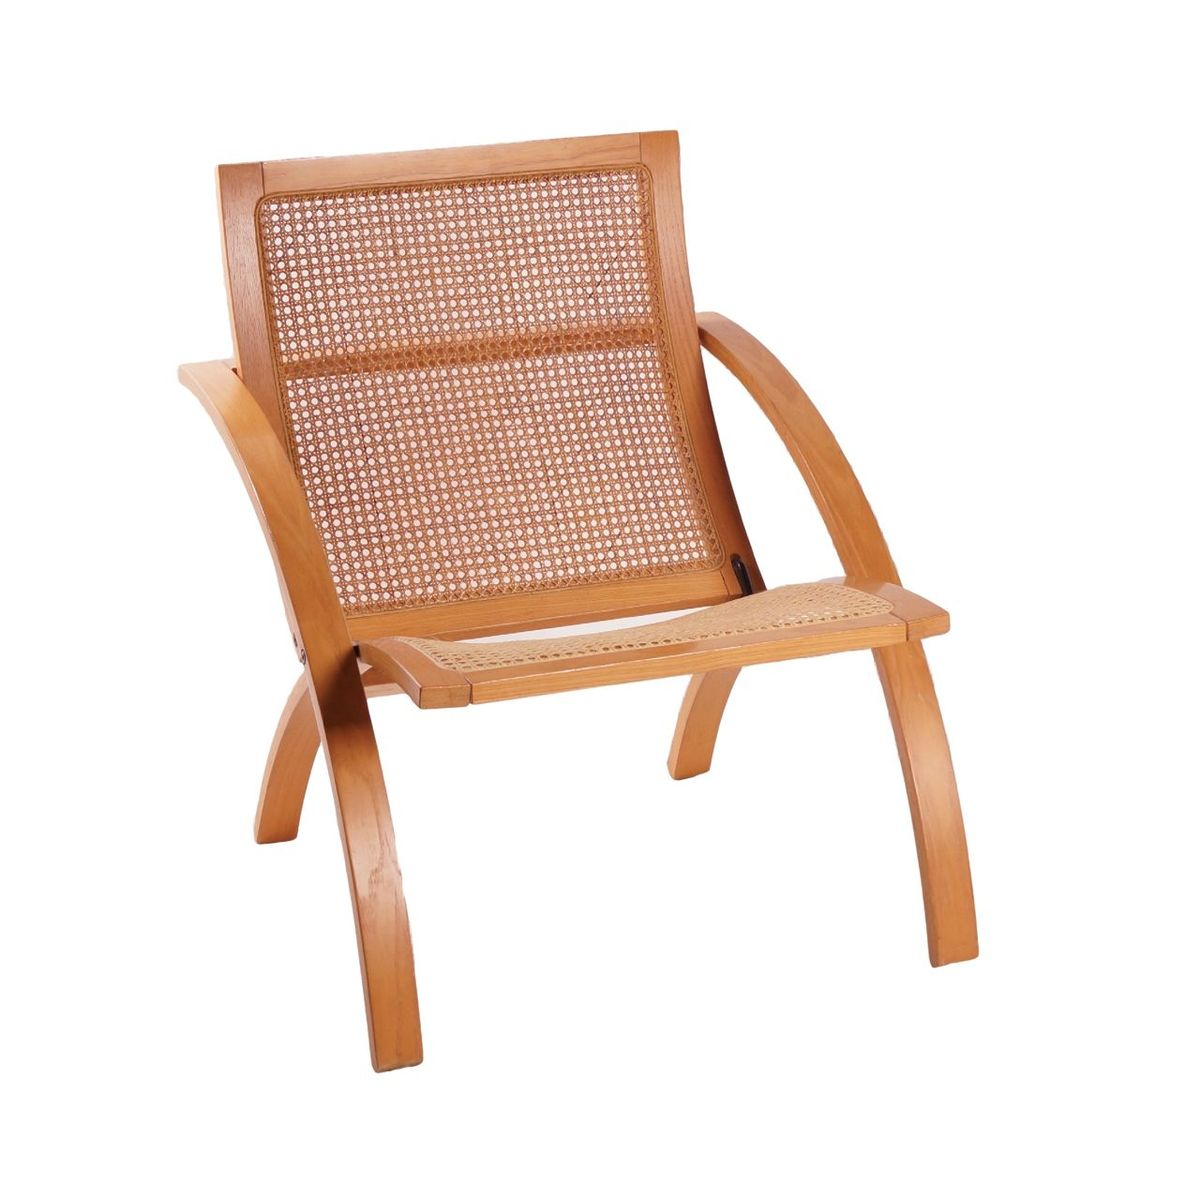 Folding Chair by Gijs Bakker for Casrelijn 1976 for sale at Pamono